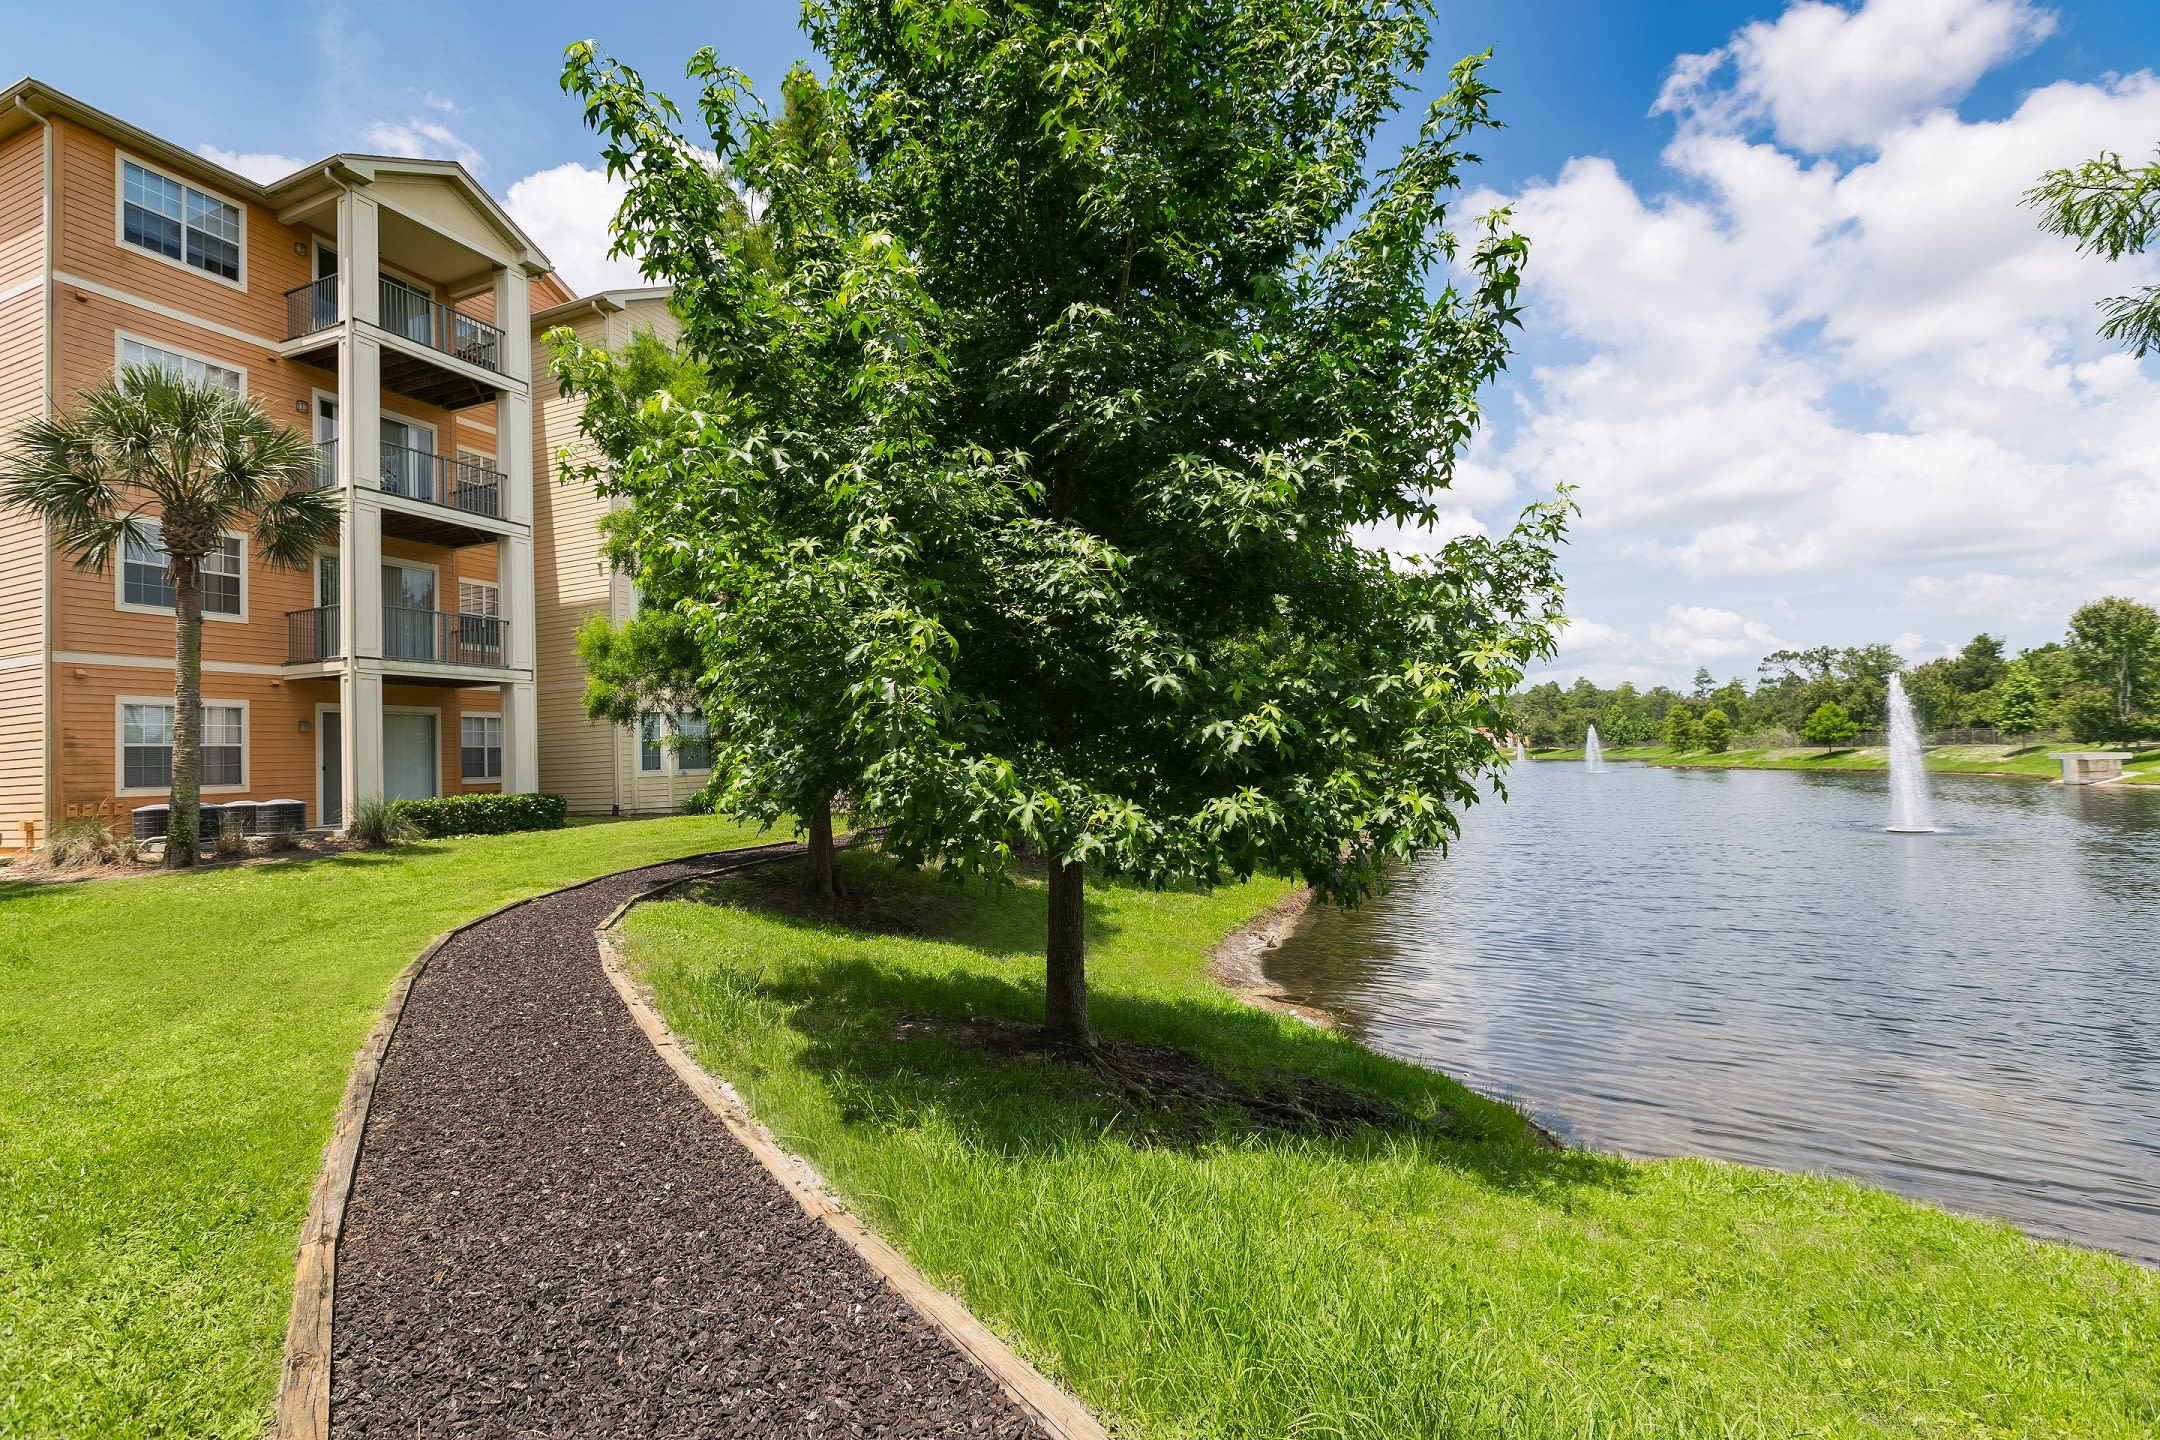 Lake view from The Aspect in Kissimmee, Florida